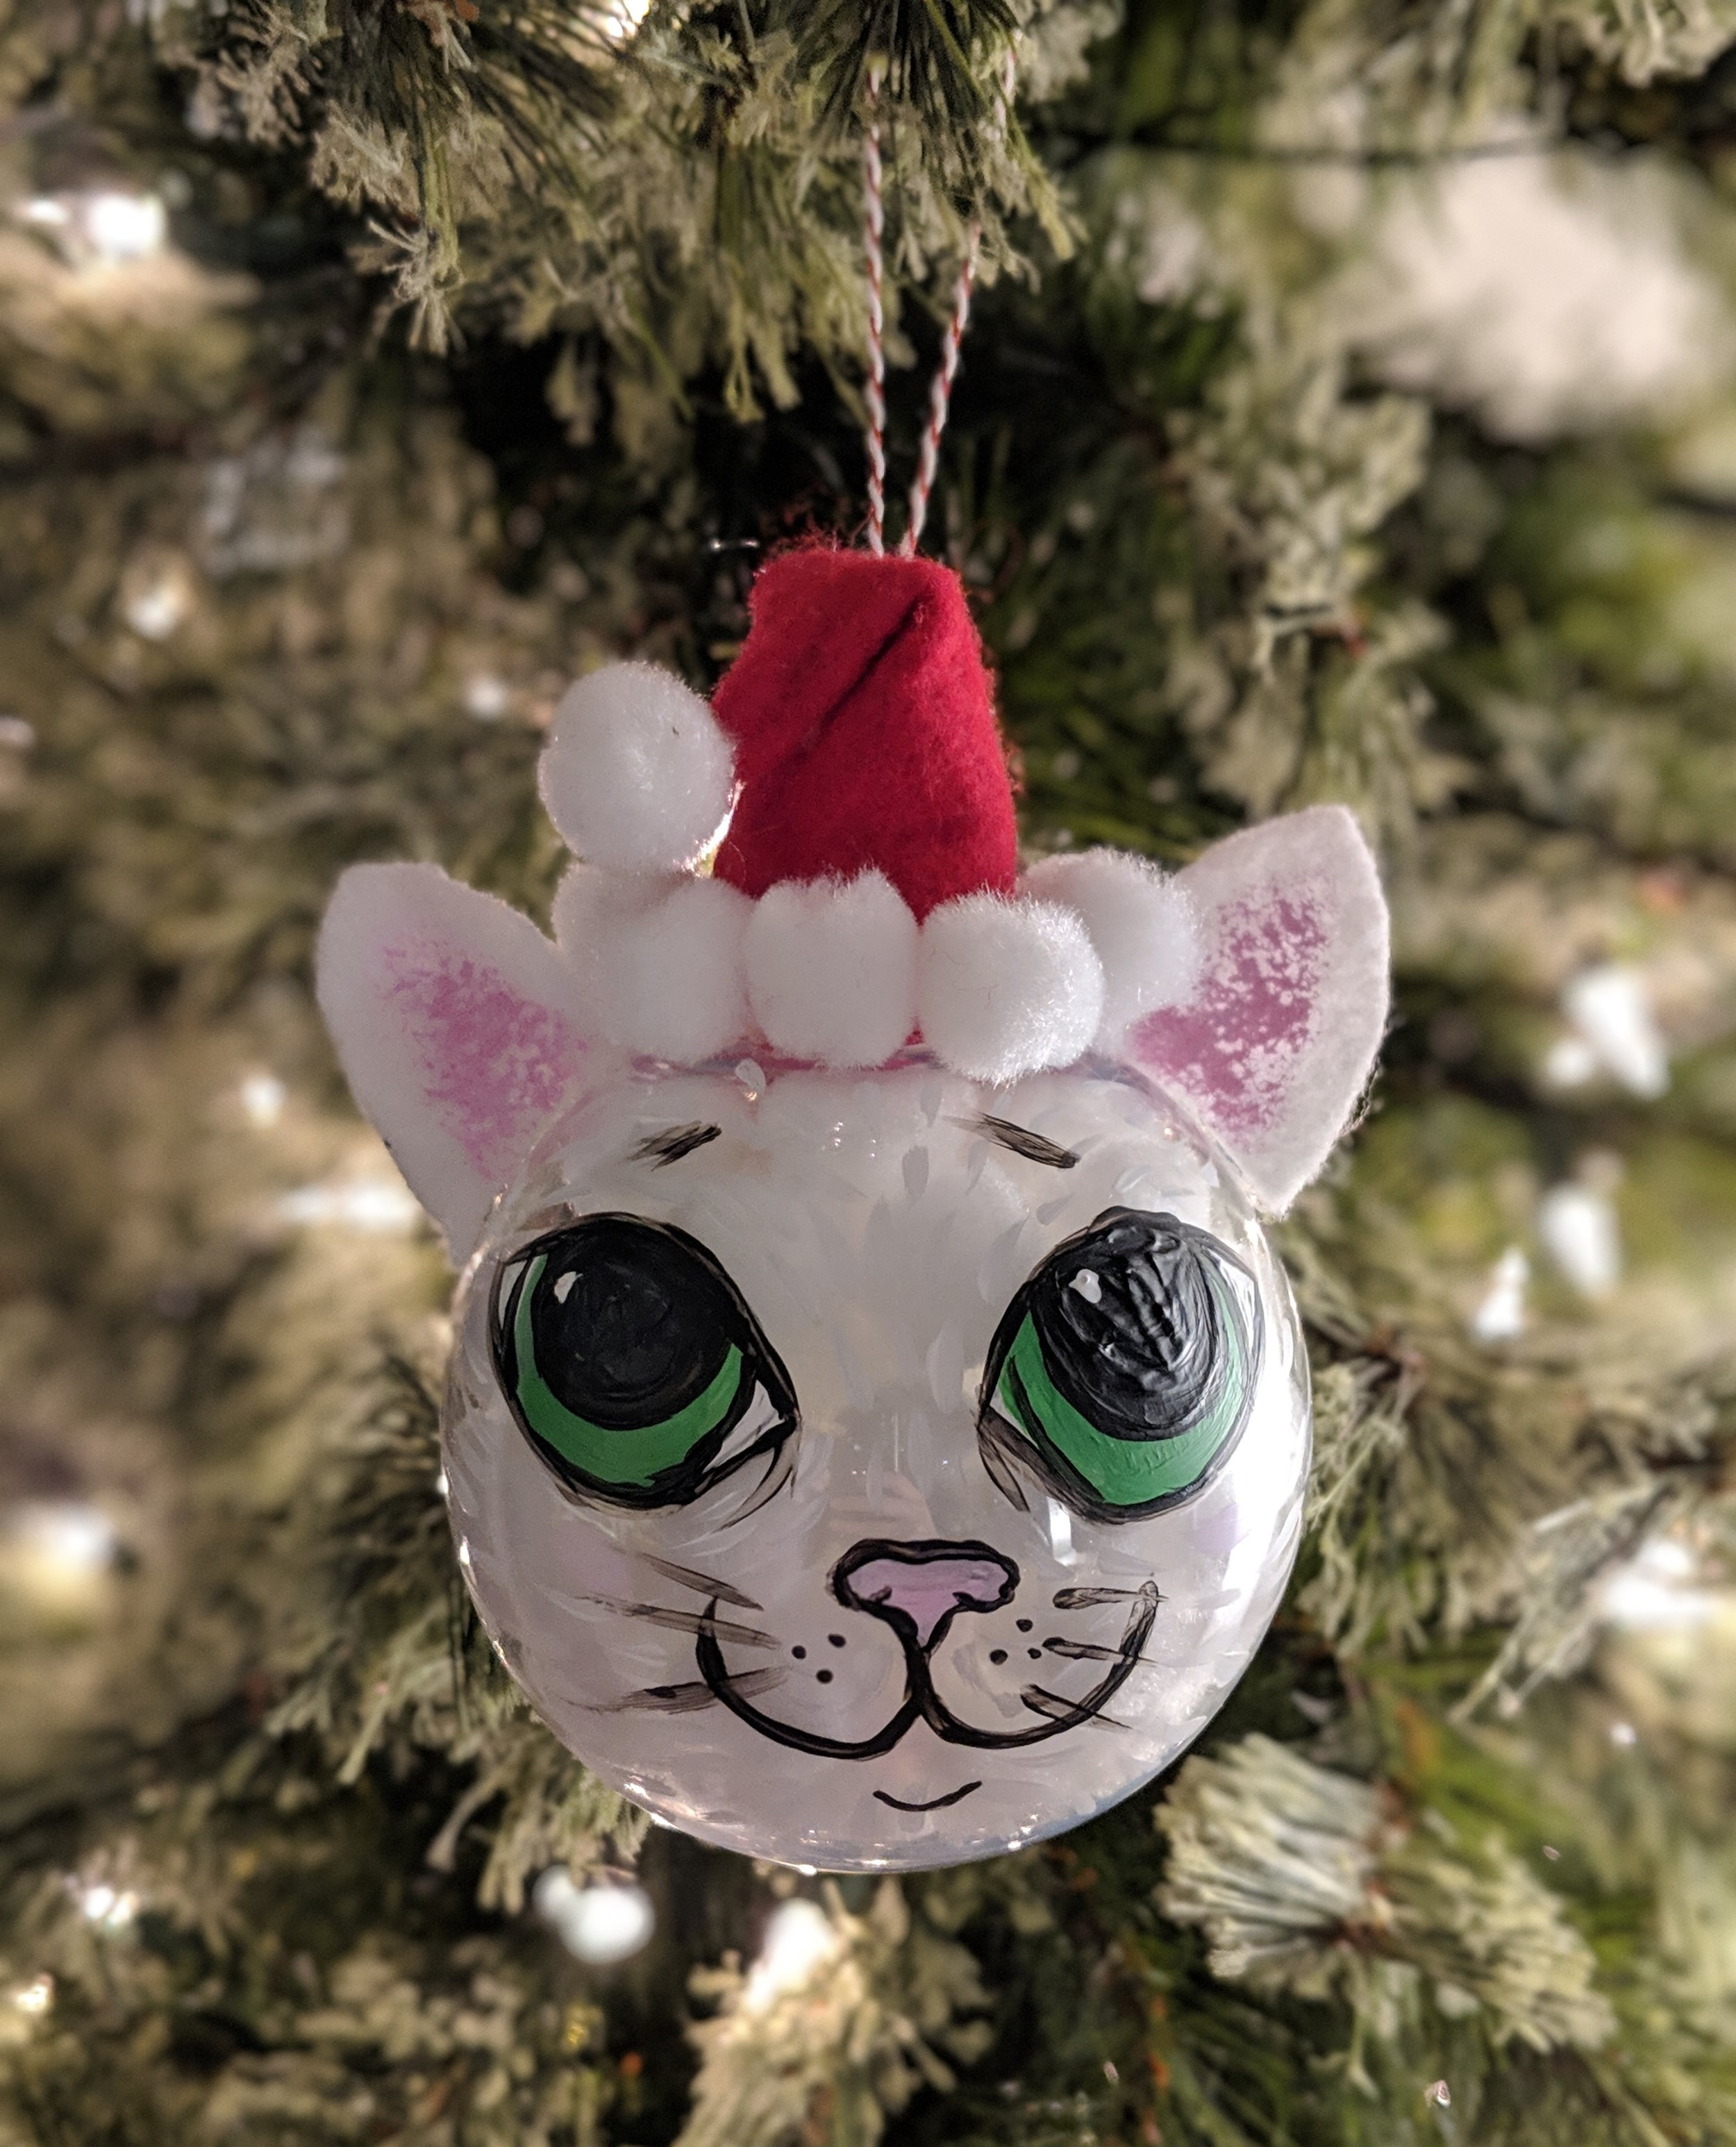 Be creative and create your own kitty-inspired tree ornament! It's easy; I just used a little hot glue, felt, paint, and some poms and string to hang. Meowy Christmas!